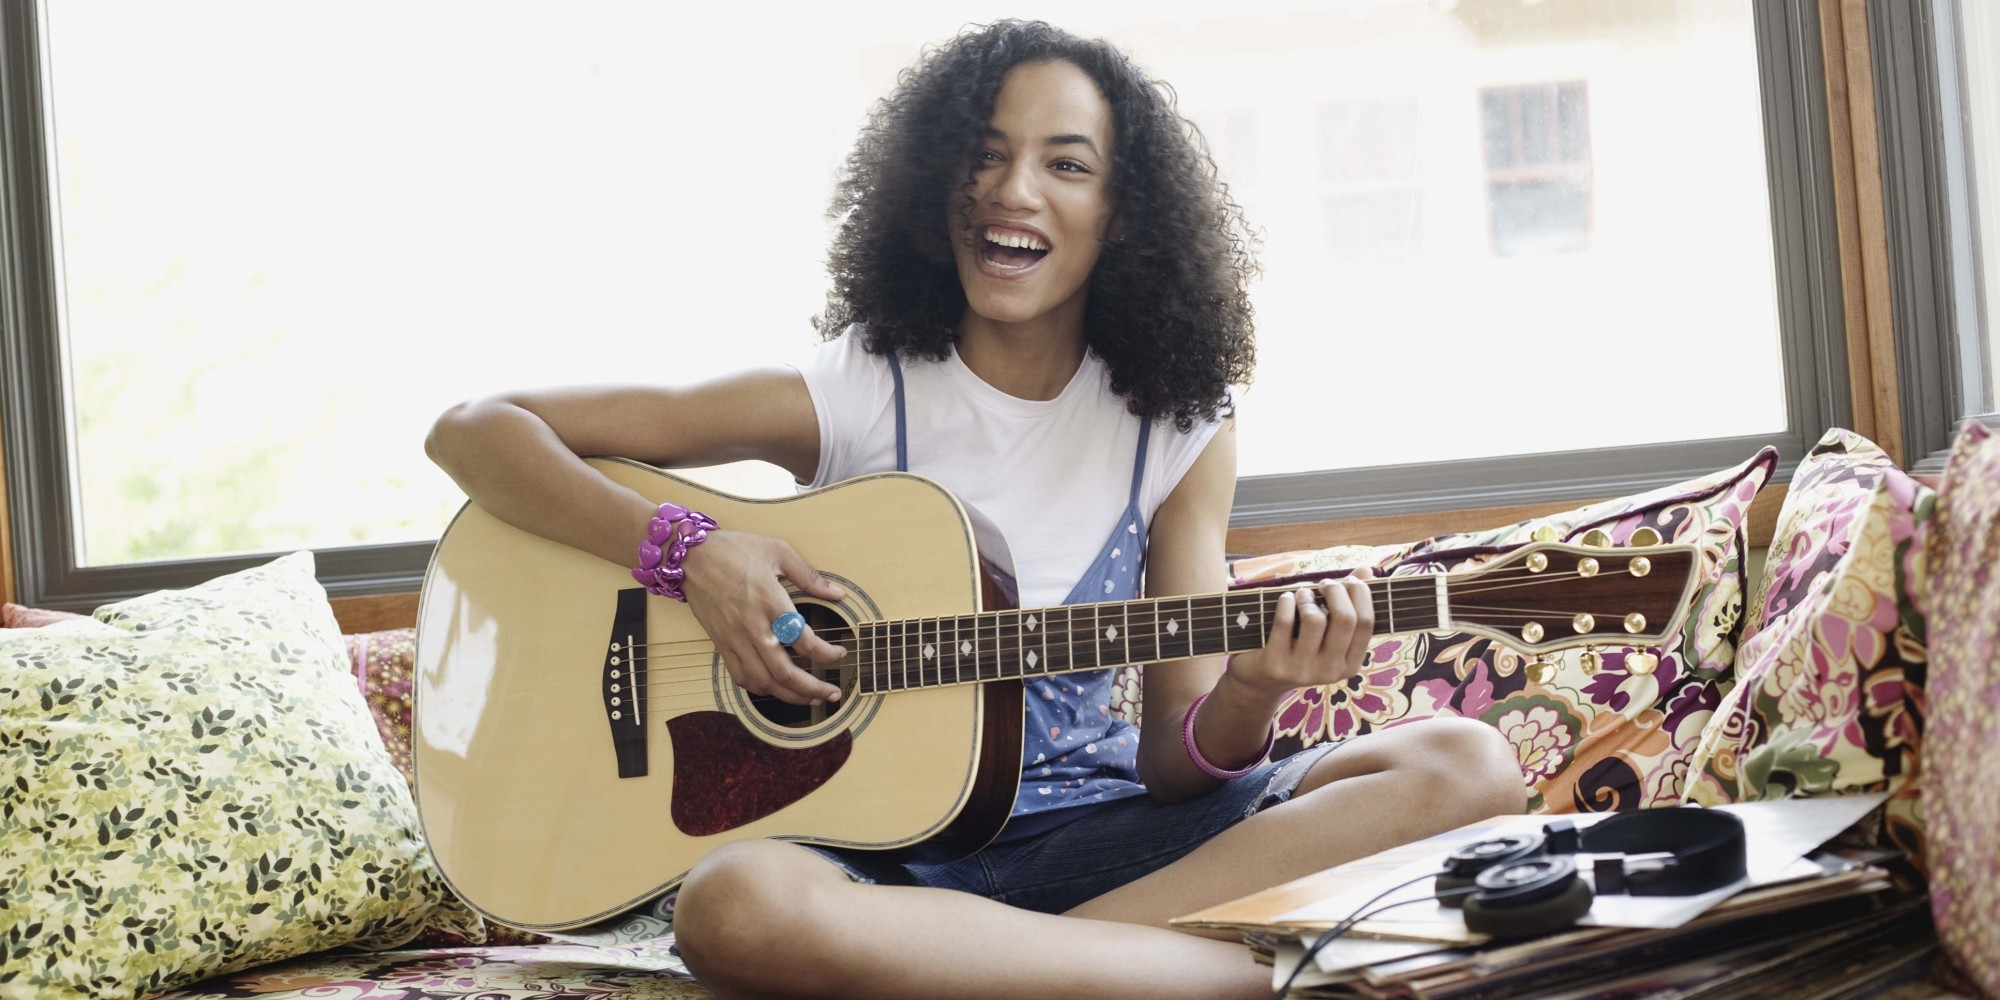 o-TEEN-GIRL-GUITAR-facebook.jpg